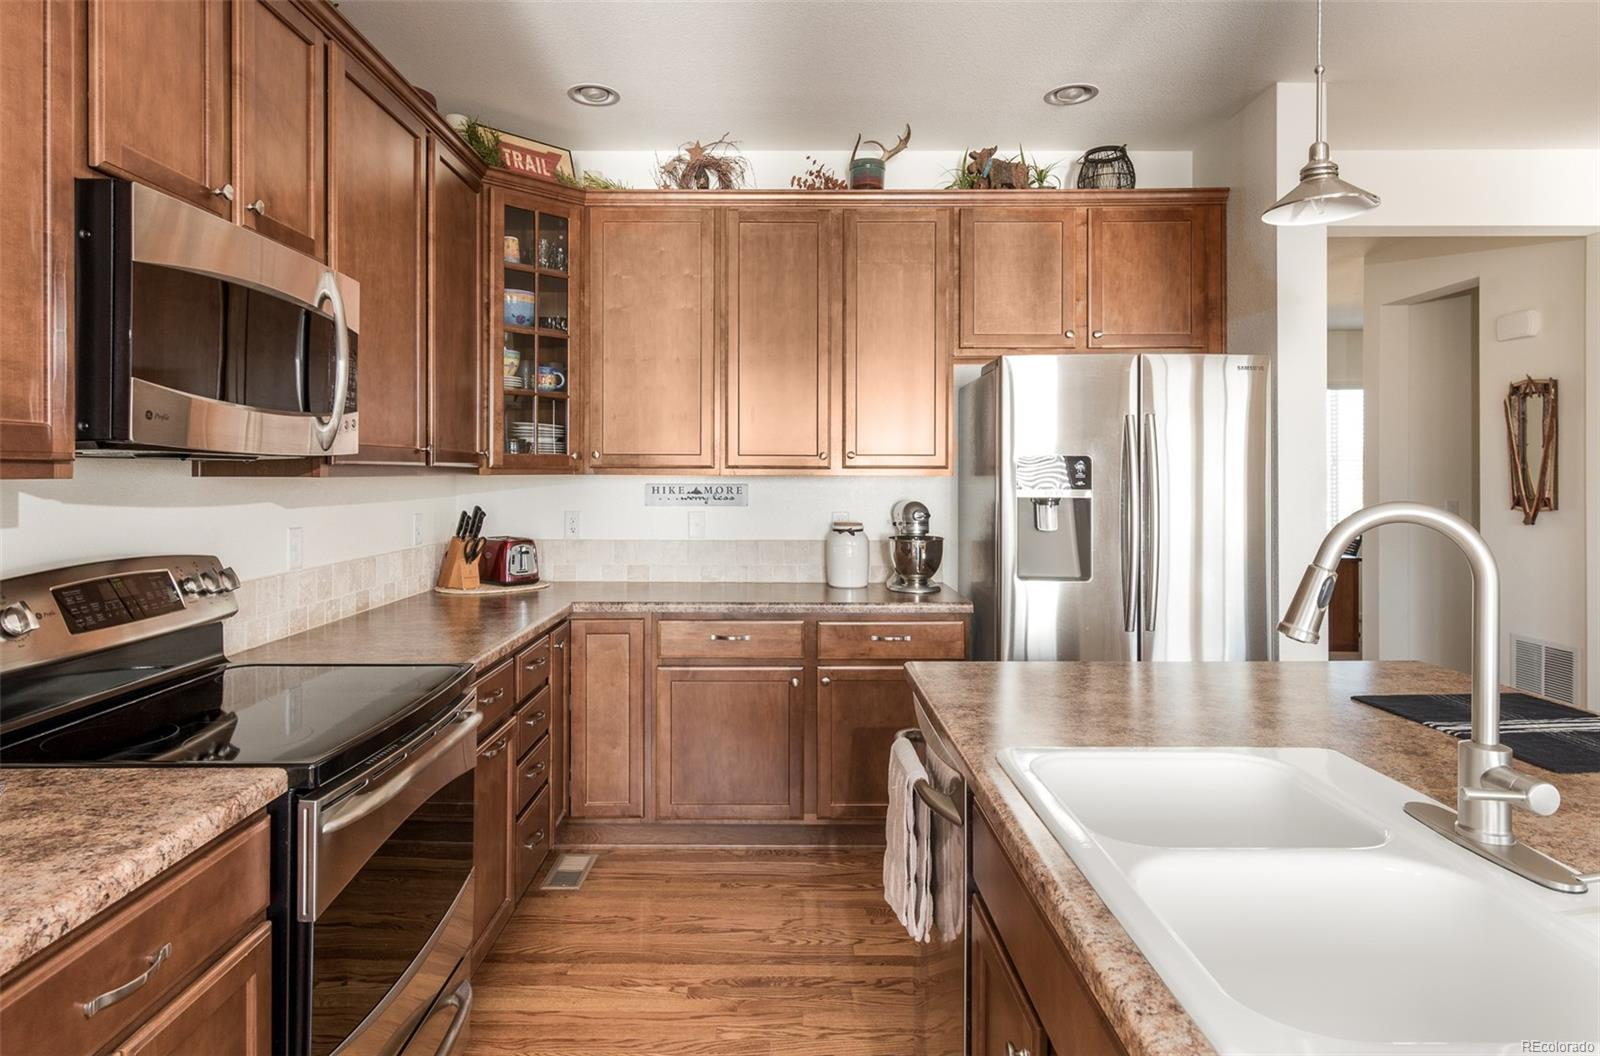 Large kitchen with plenty of storage space and crown moulding on tall cabinets.